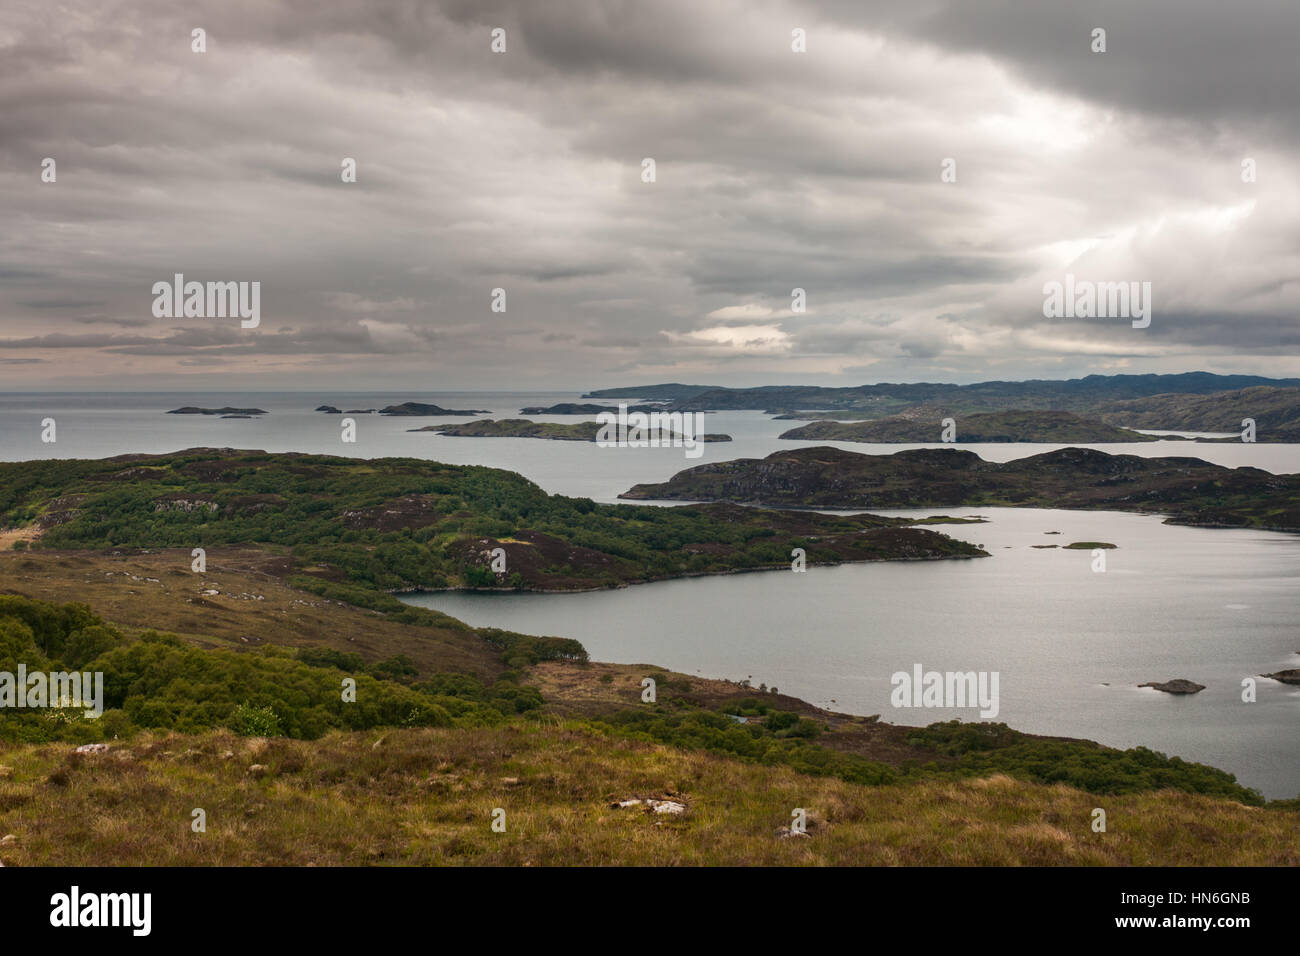 Assynt Peninsula, Scotland - June 7, 2012: Under dark cloudy sky aerial view on Loch Ardhair with intrusion of the - Stock Image